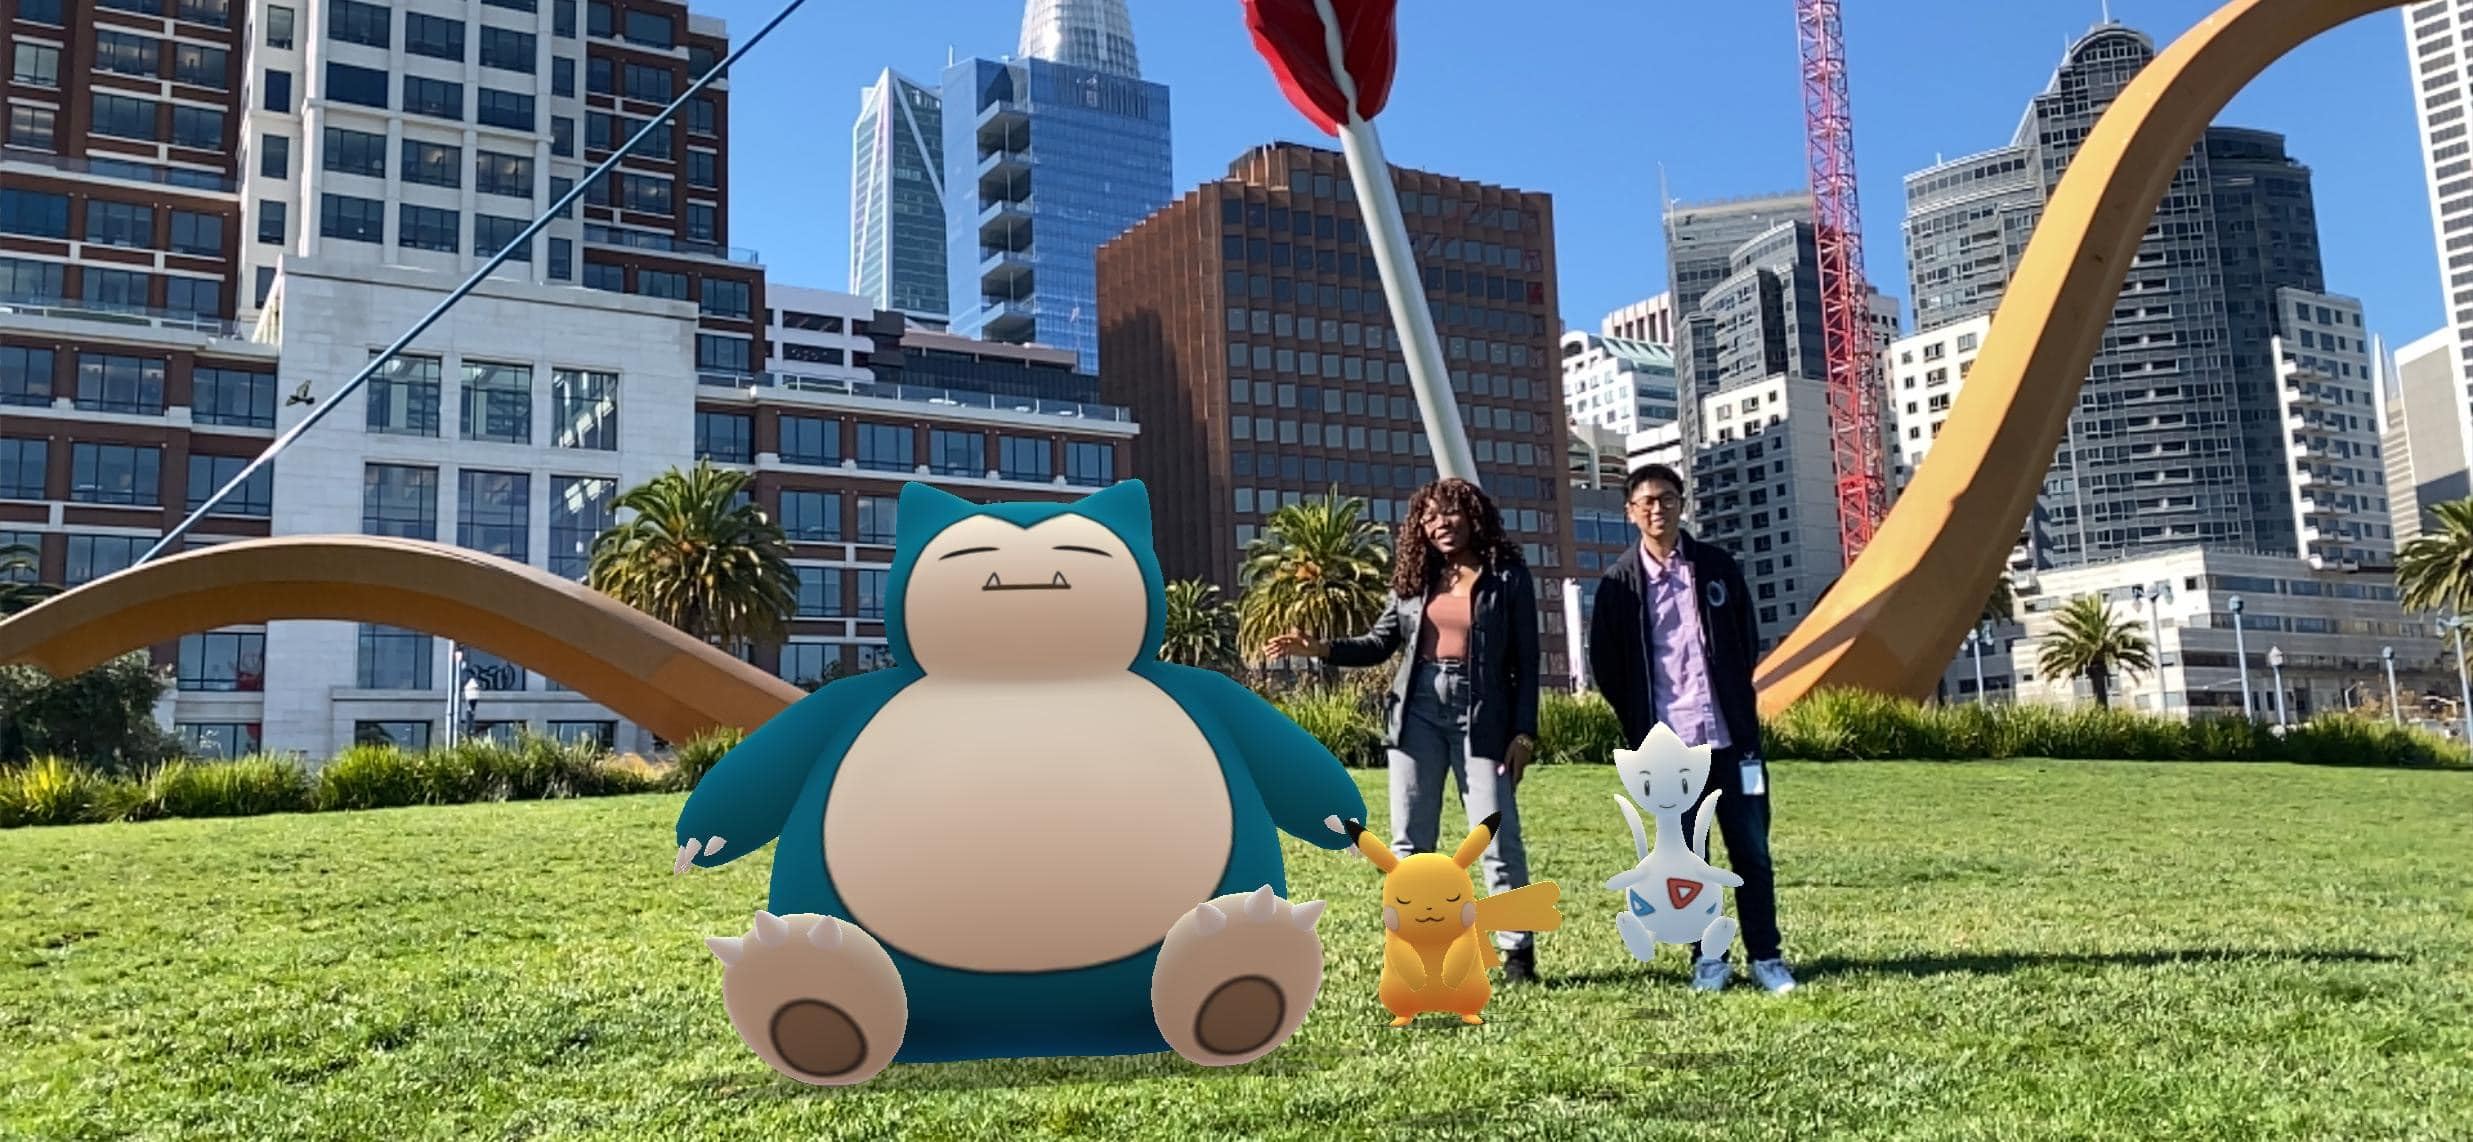 'Pokémon GO' will add a new feature to make creatures appear more real